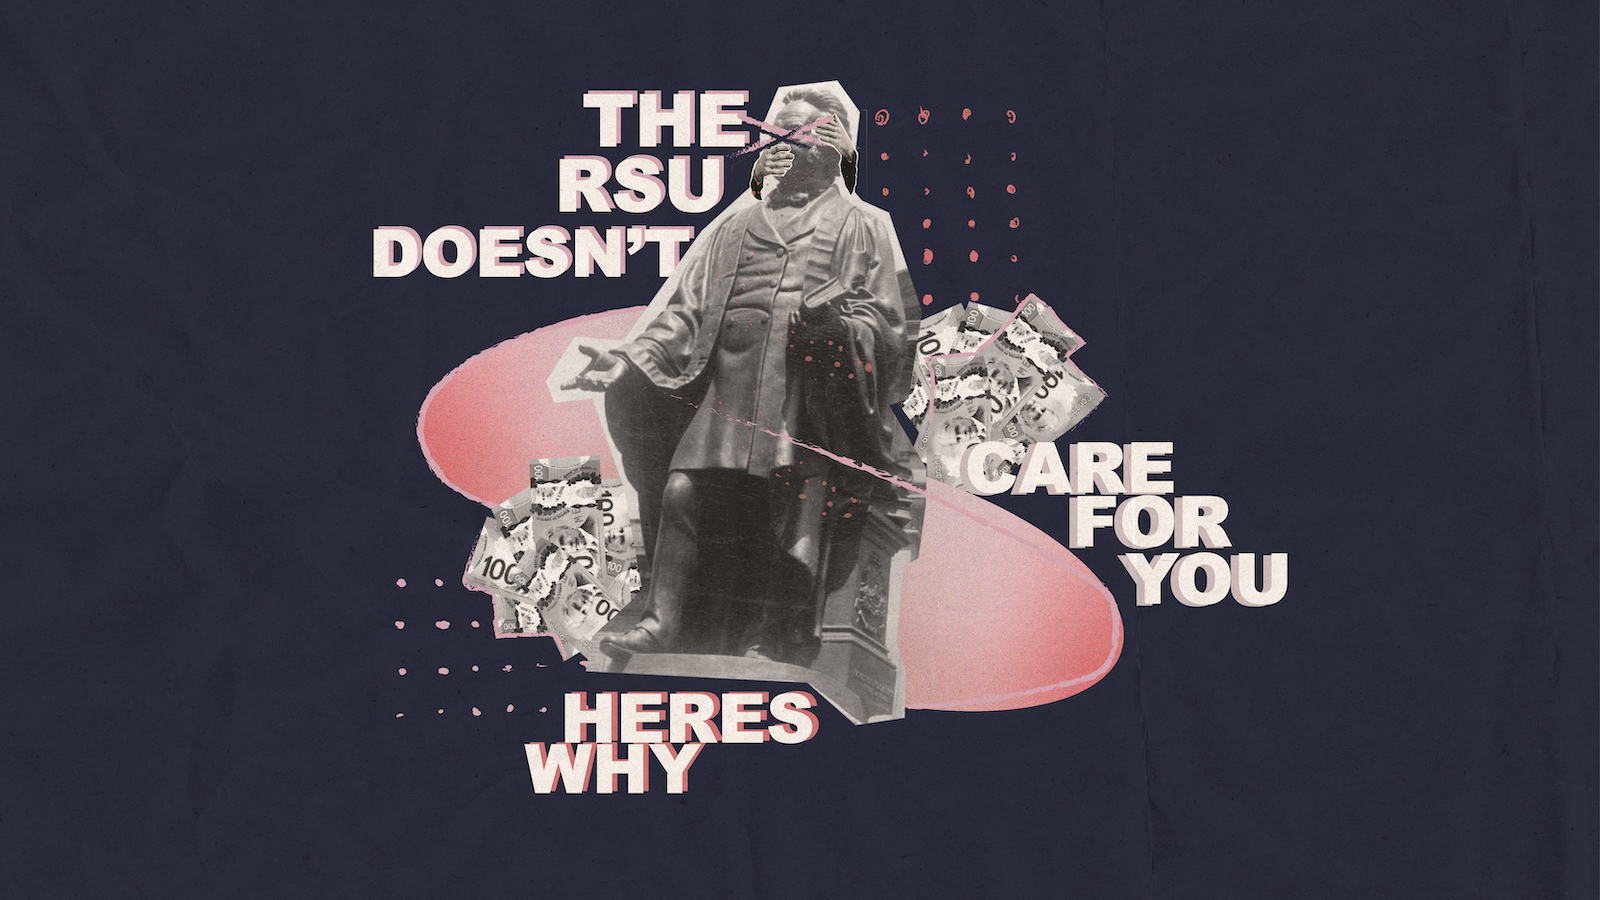 The RSU doesn't care about you, here's why.